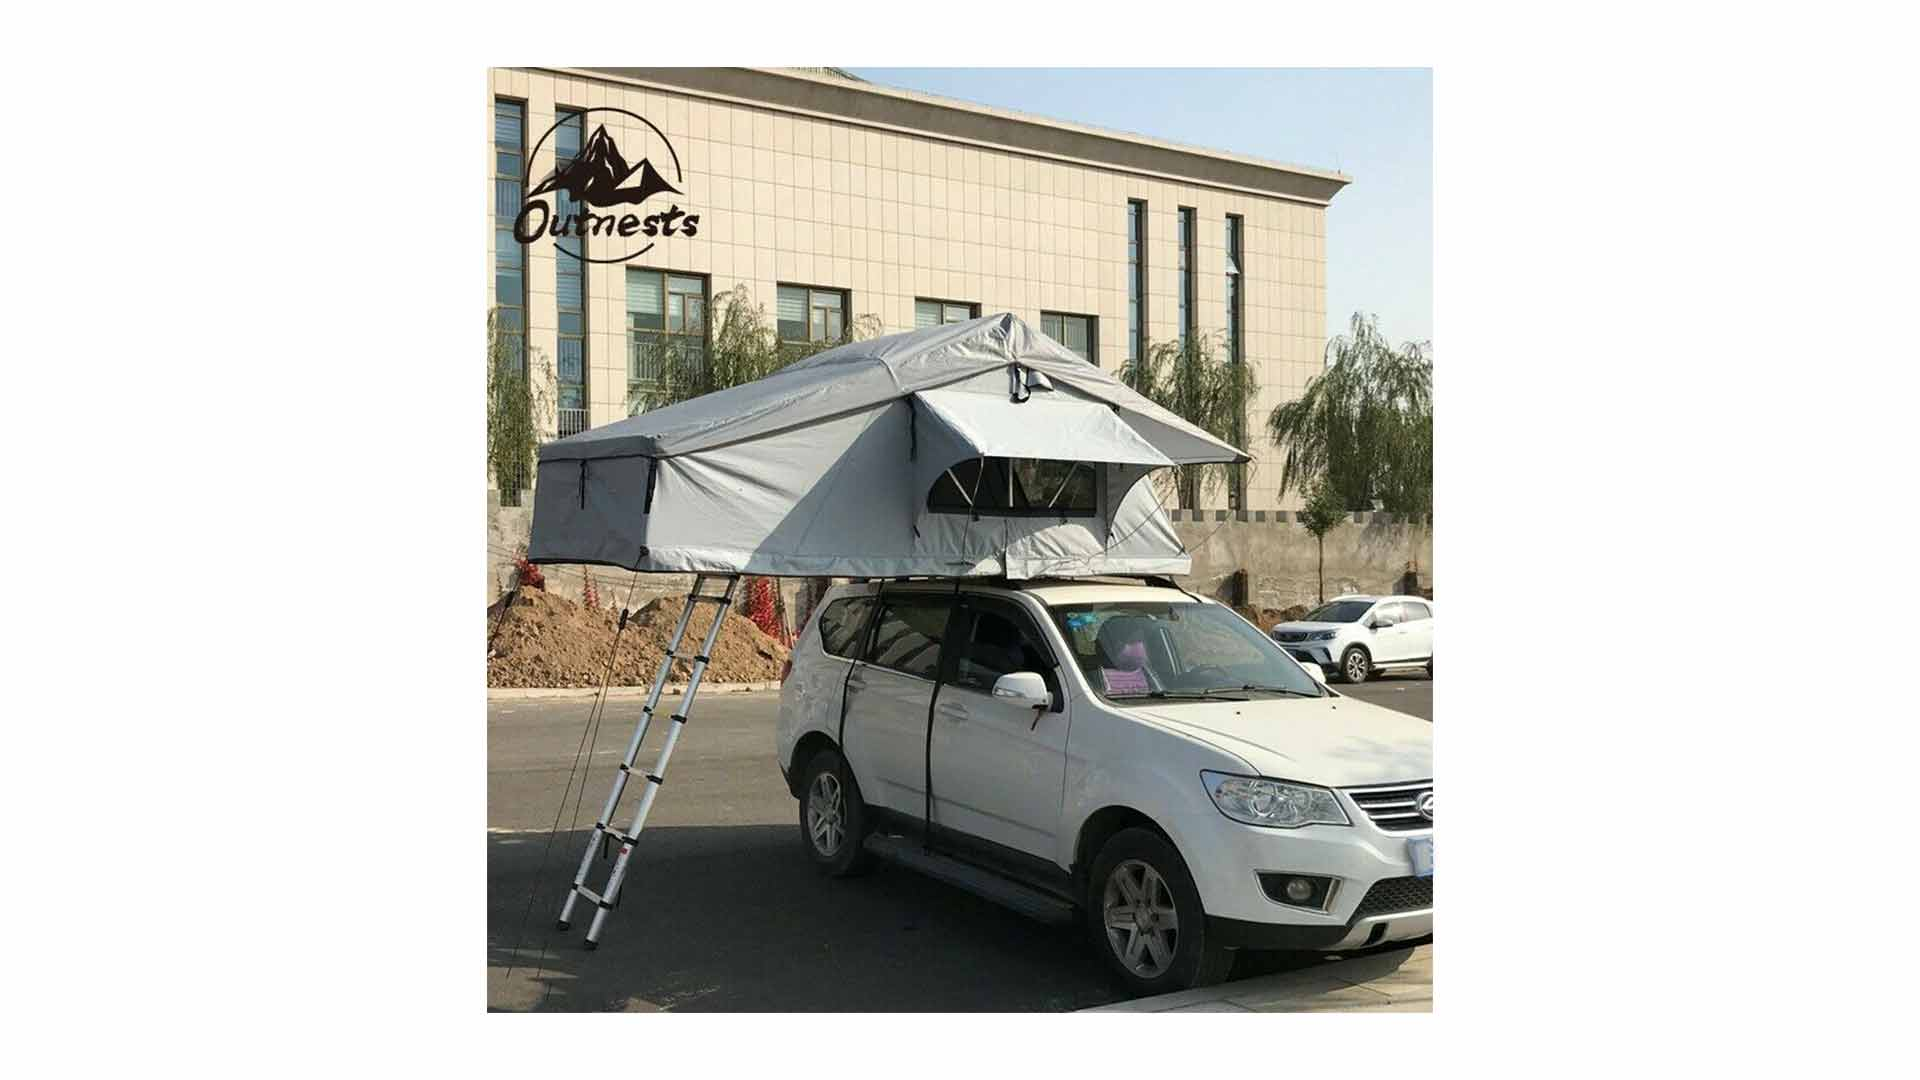 outnests soft roof tent rd01